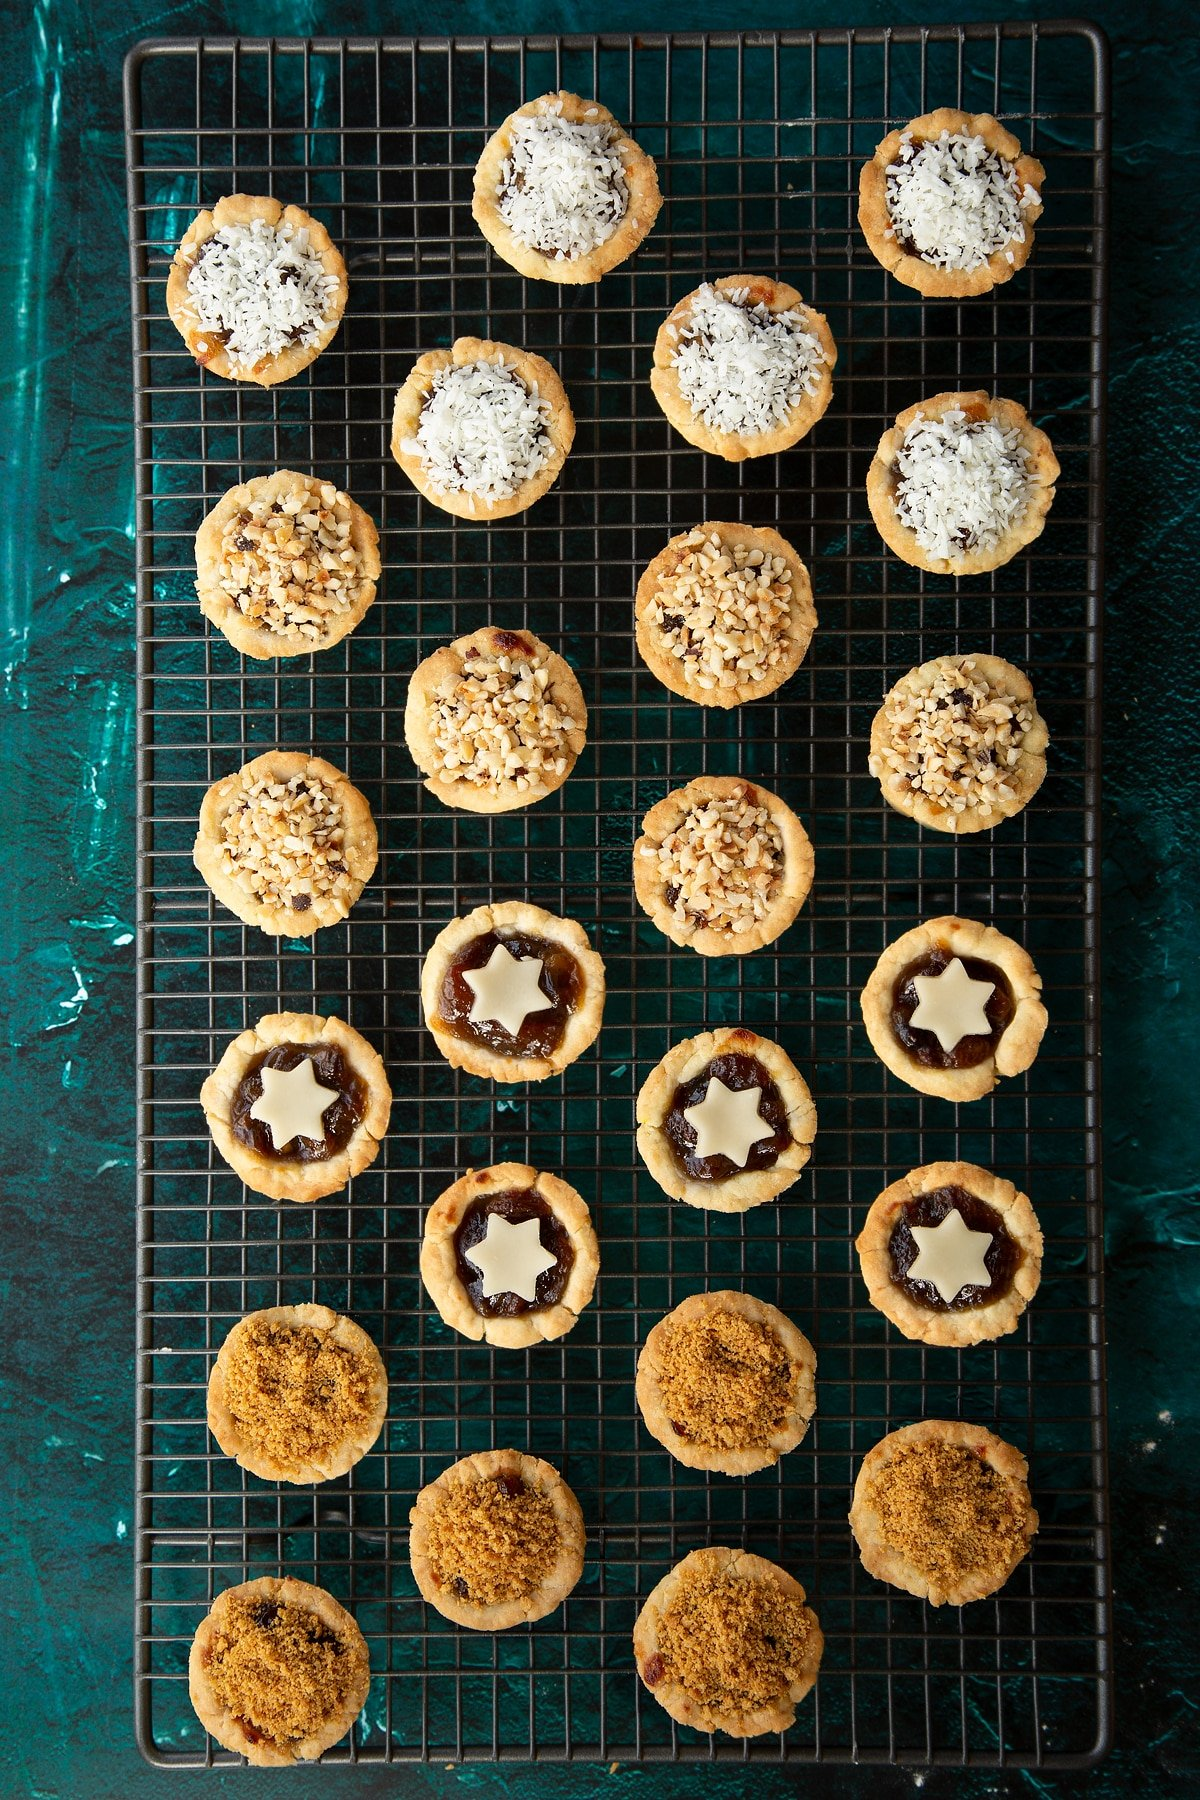 Freshly baked mini mince pies on a cooling rack. They're topped with  marzipan stars, chopped nuts, coconut or crushed gingernuts.